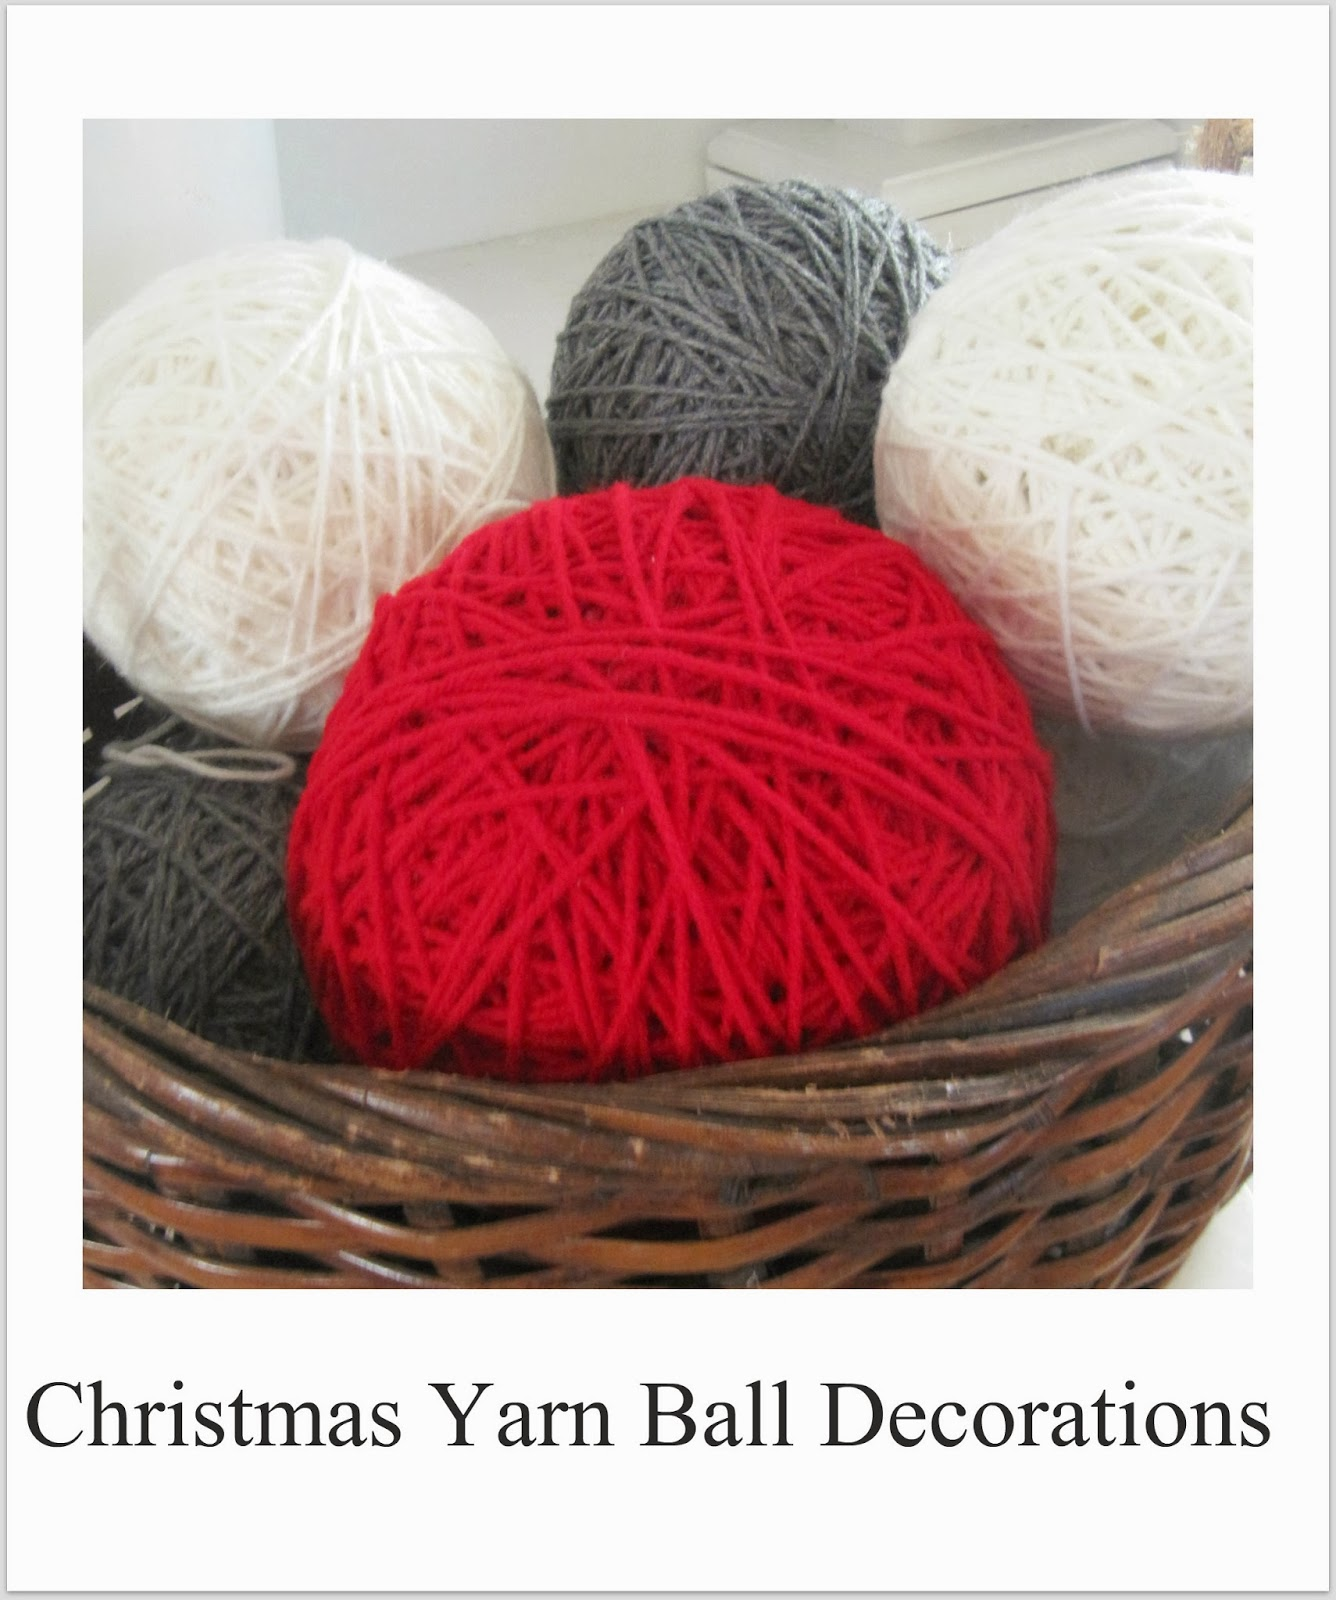 http://thewickerhouse.blogspot.com/2011/12/yarn-decorations.html